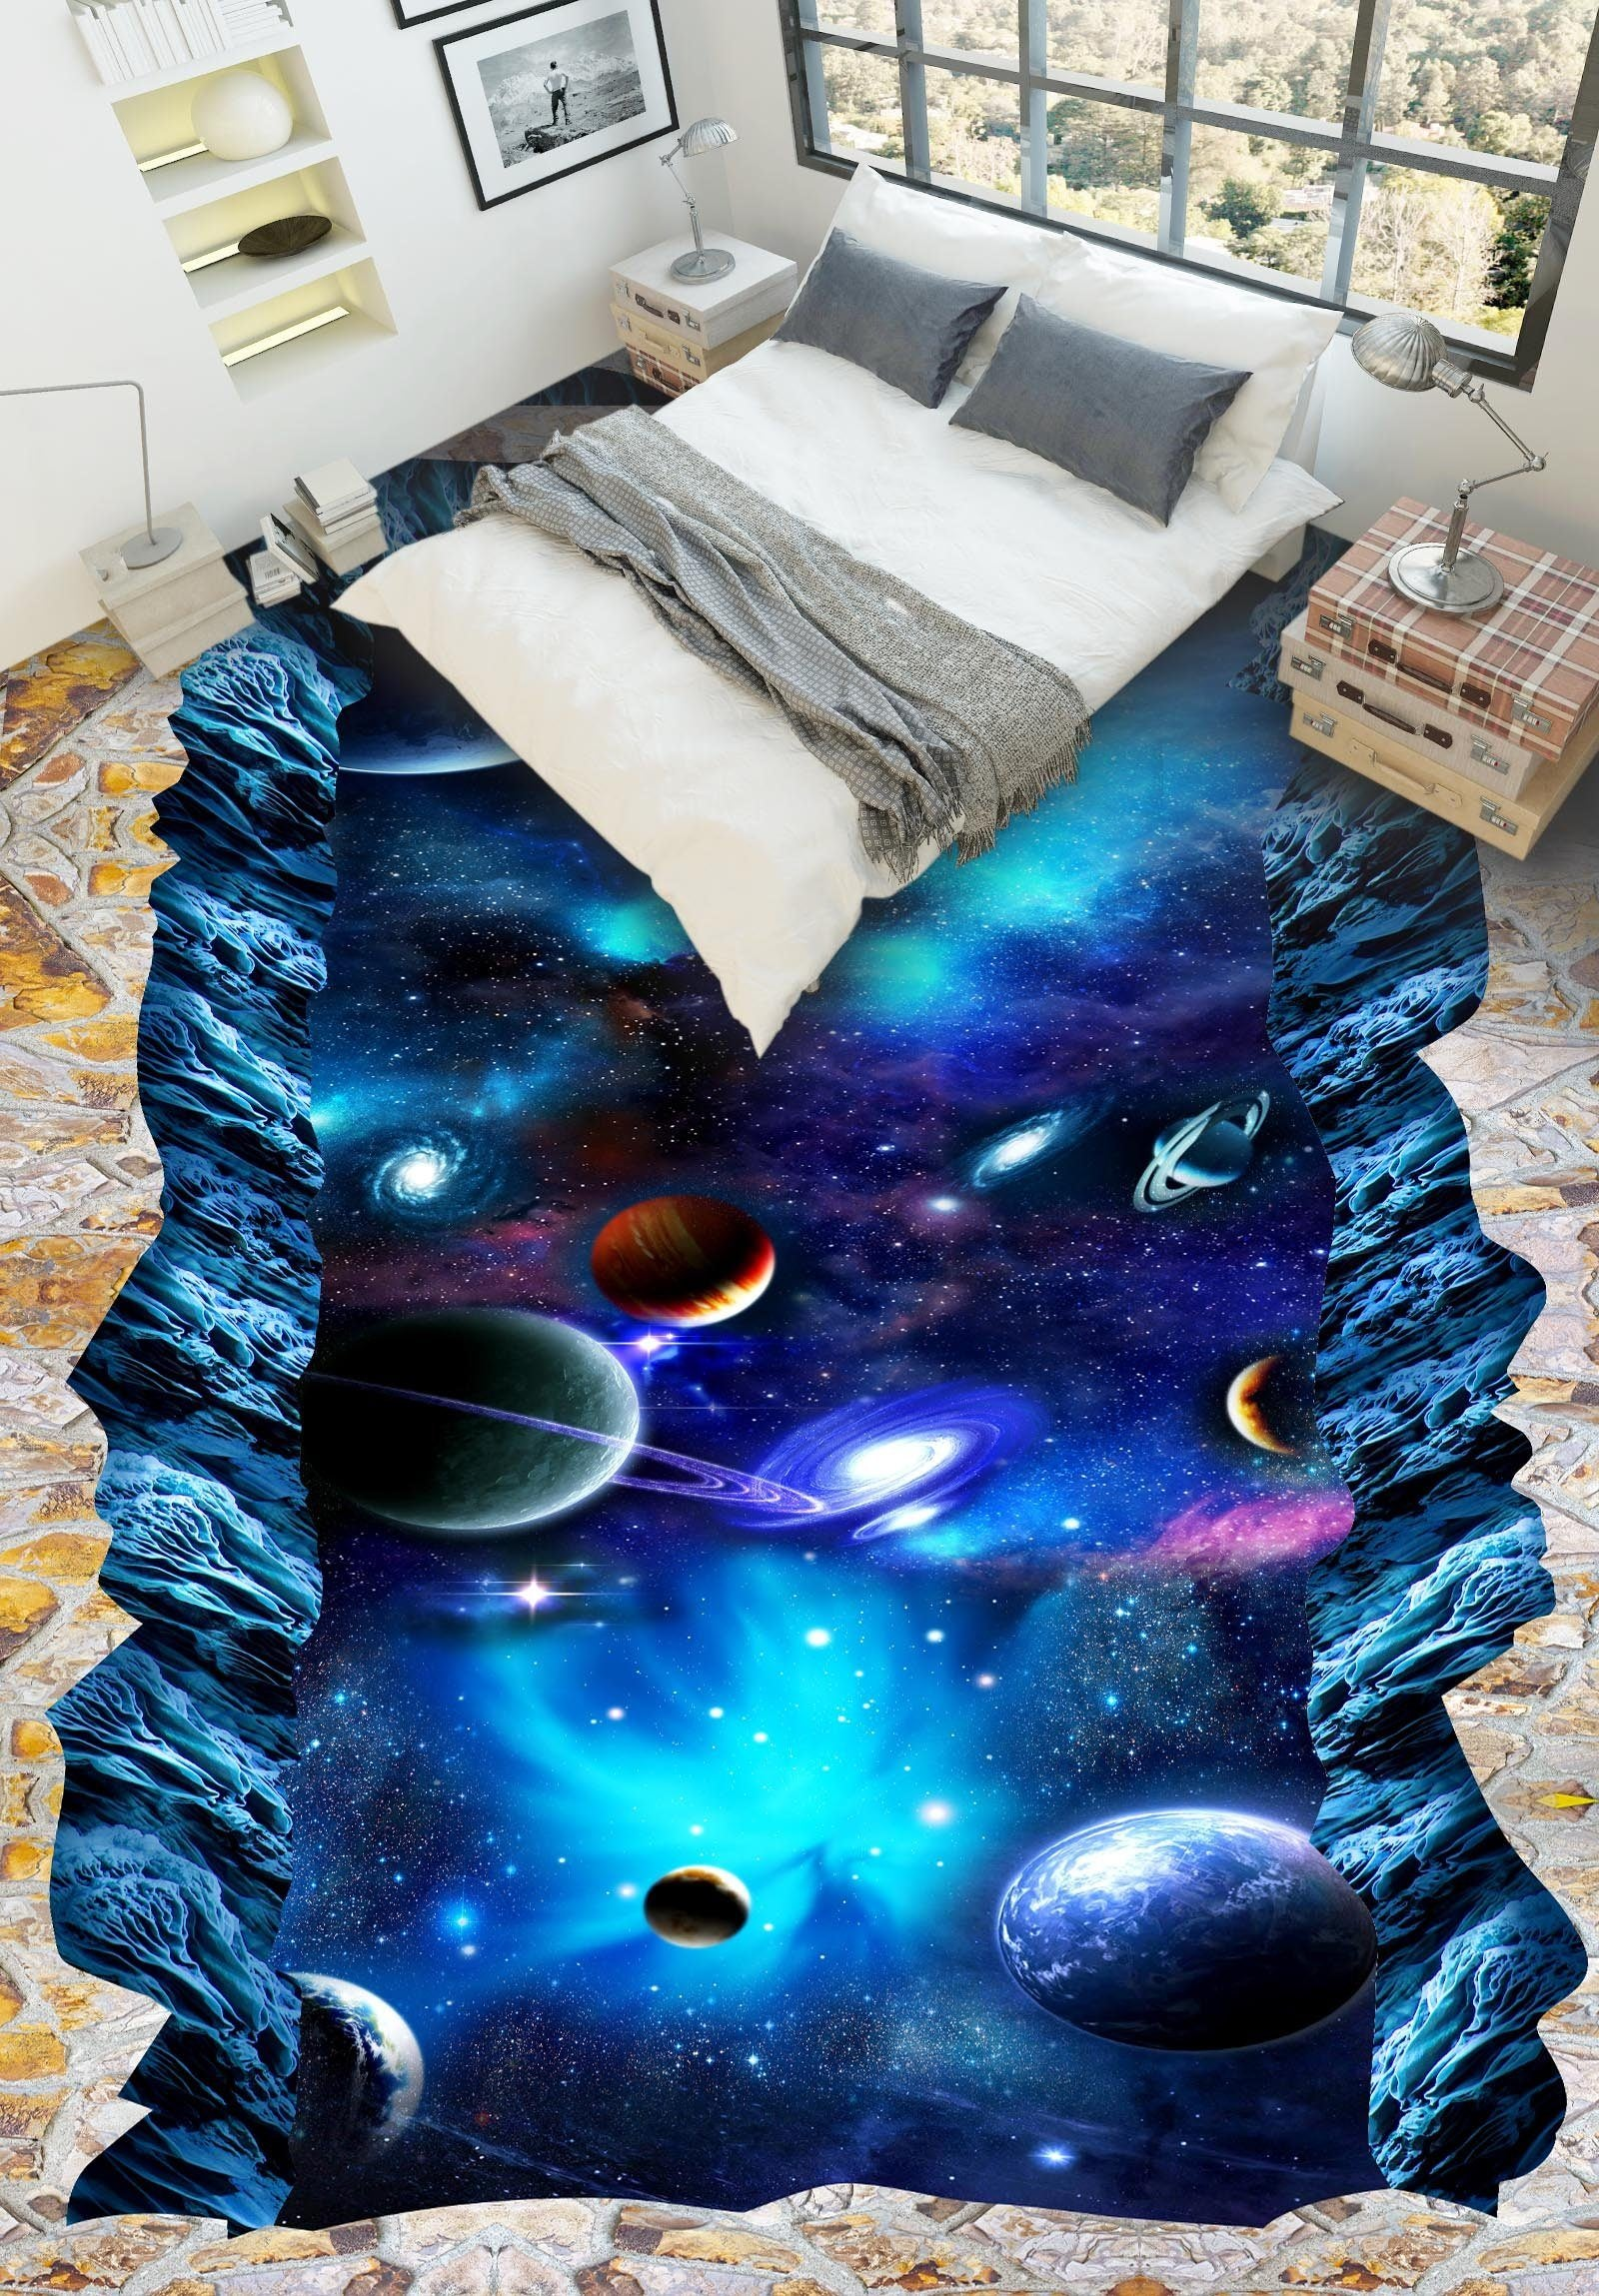 3D Bright Blue Space Floor Mural Wallpaper AJ Wallpaper 2